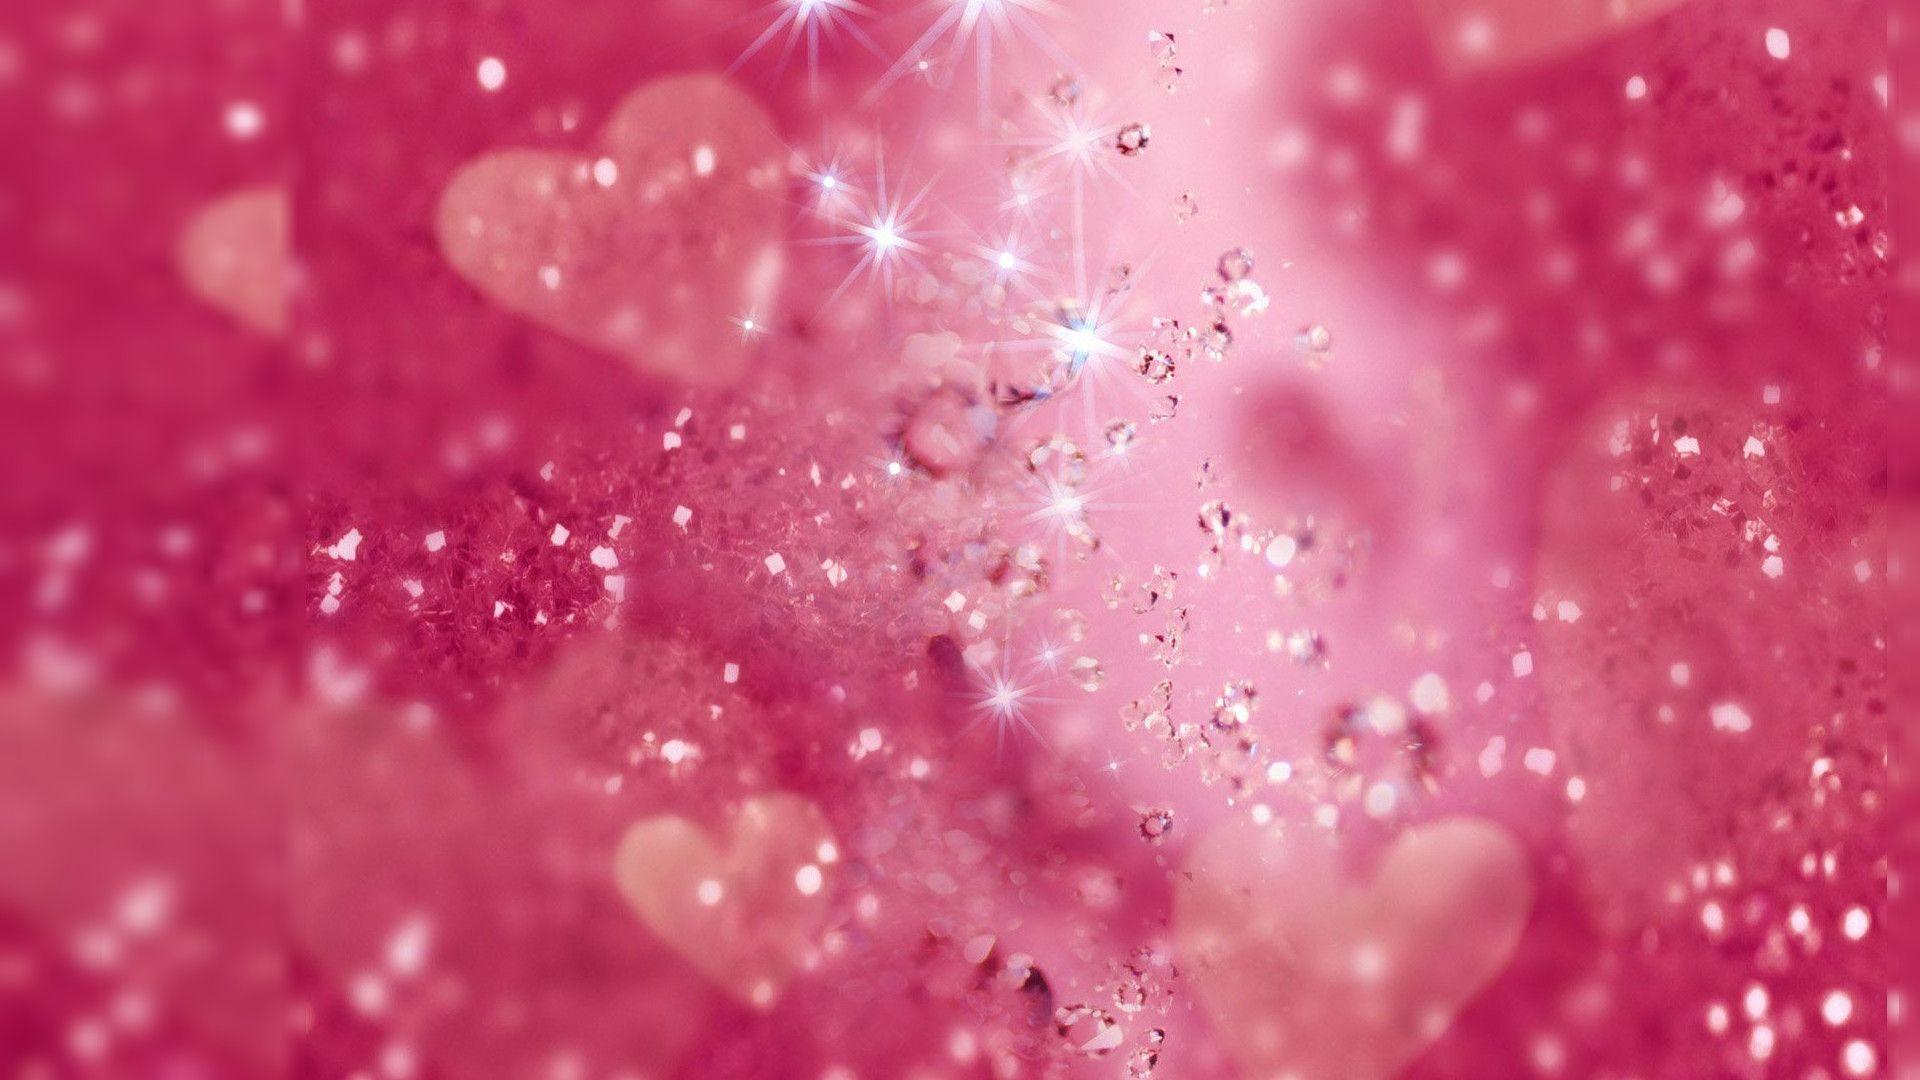 Pretty Pink Wallpapers 1920x1080